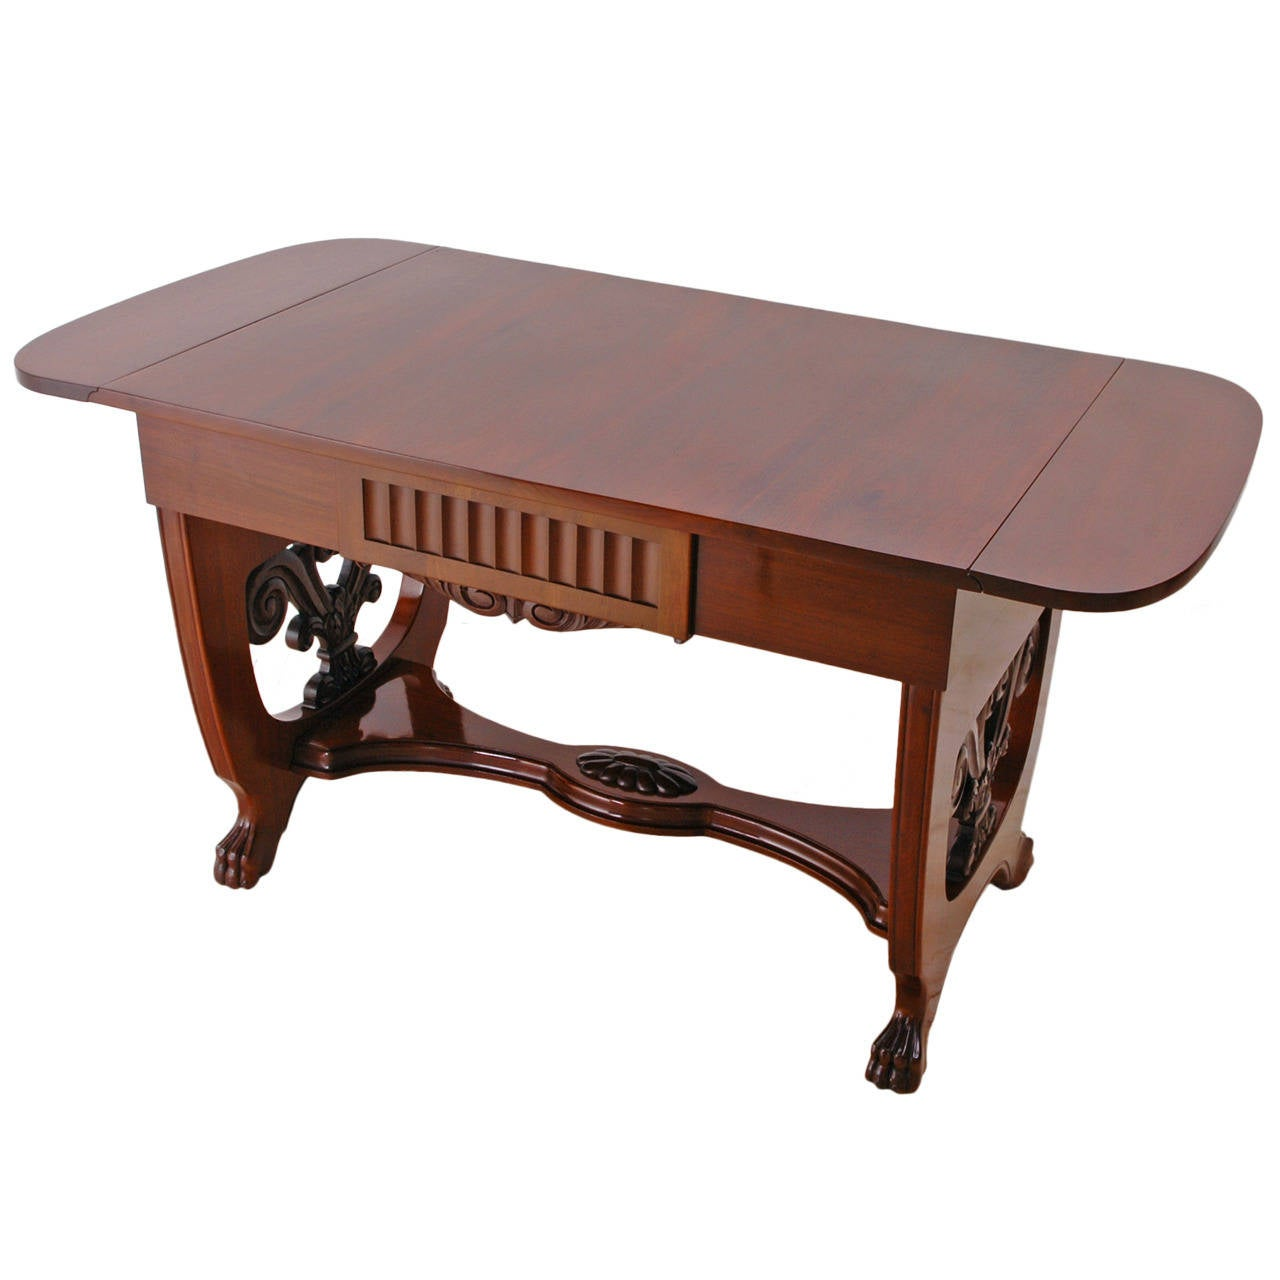 A very fine Baltic writing or sofa table in the Empire style (and edging toward the Art Deco period that would follow.) In Cuban mahogany with carved trestle-base ending in carved lion's paw feet. Features two drop-leaves and one-drawer. French